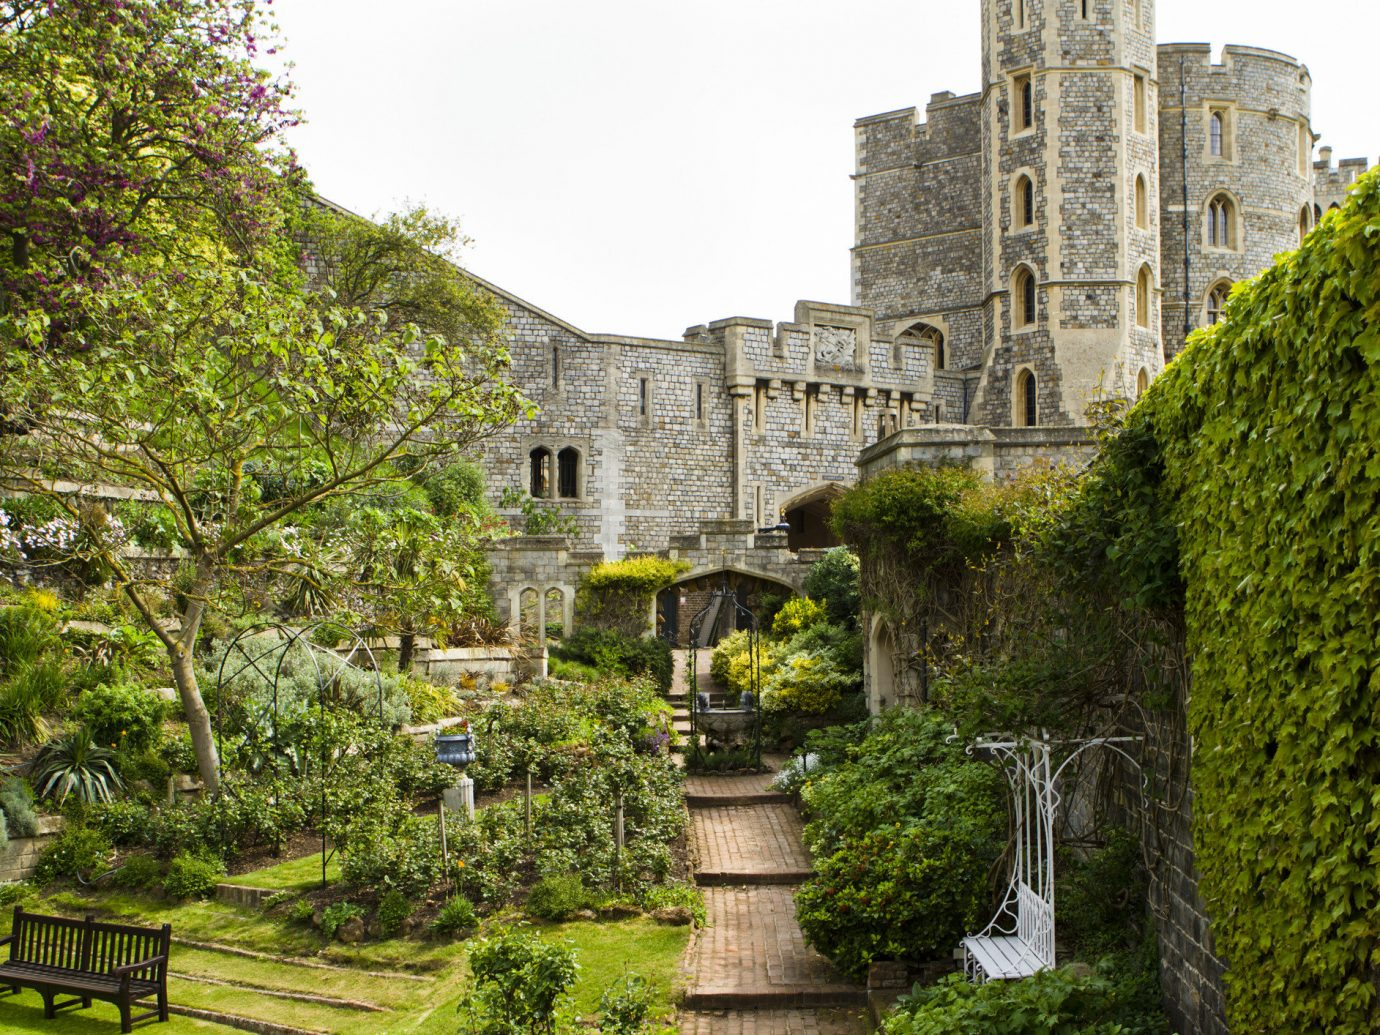 Hotels Road Trips Trip Ideas tree outdoor sky building castle grass stately home Garden plant estate Ruins medieval architecture national trust for places of historic interest or natural beauty old stone